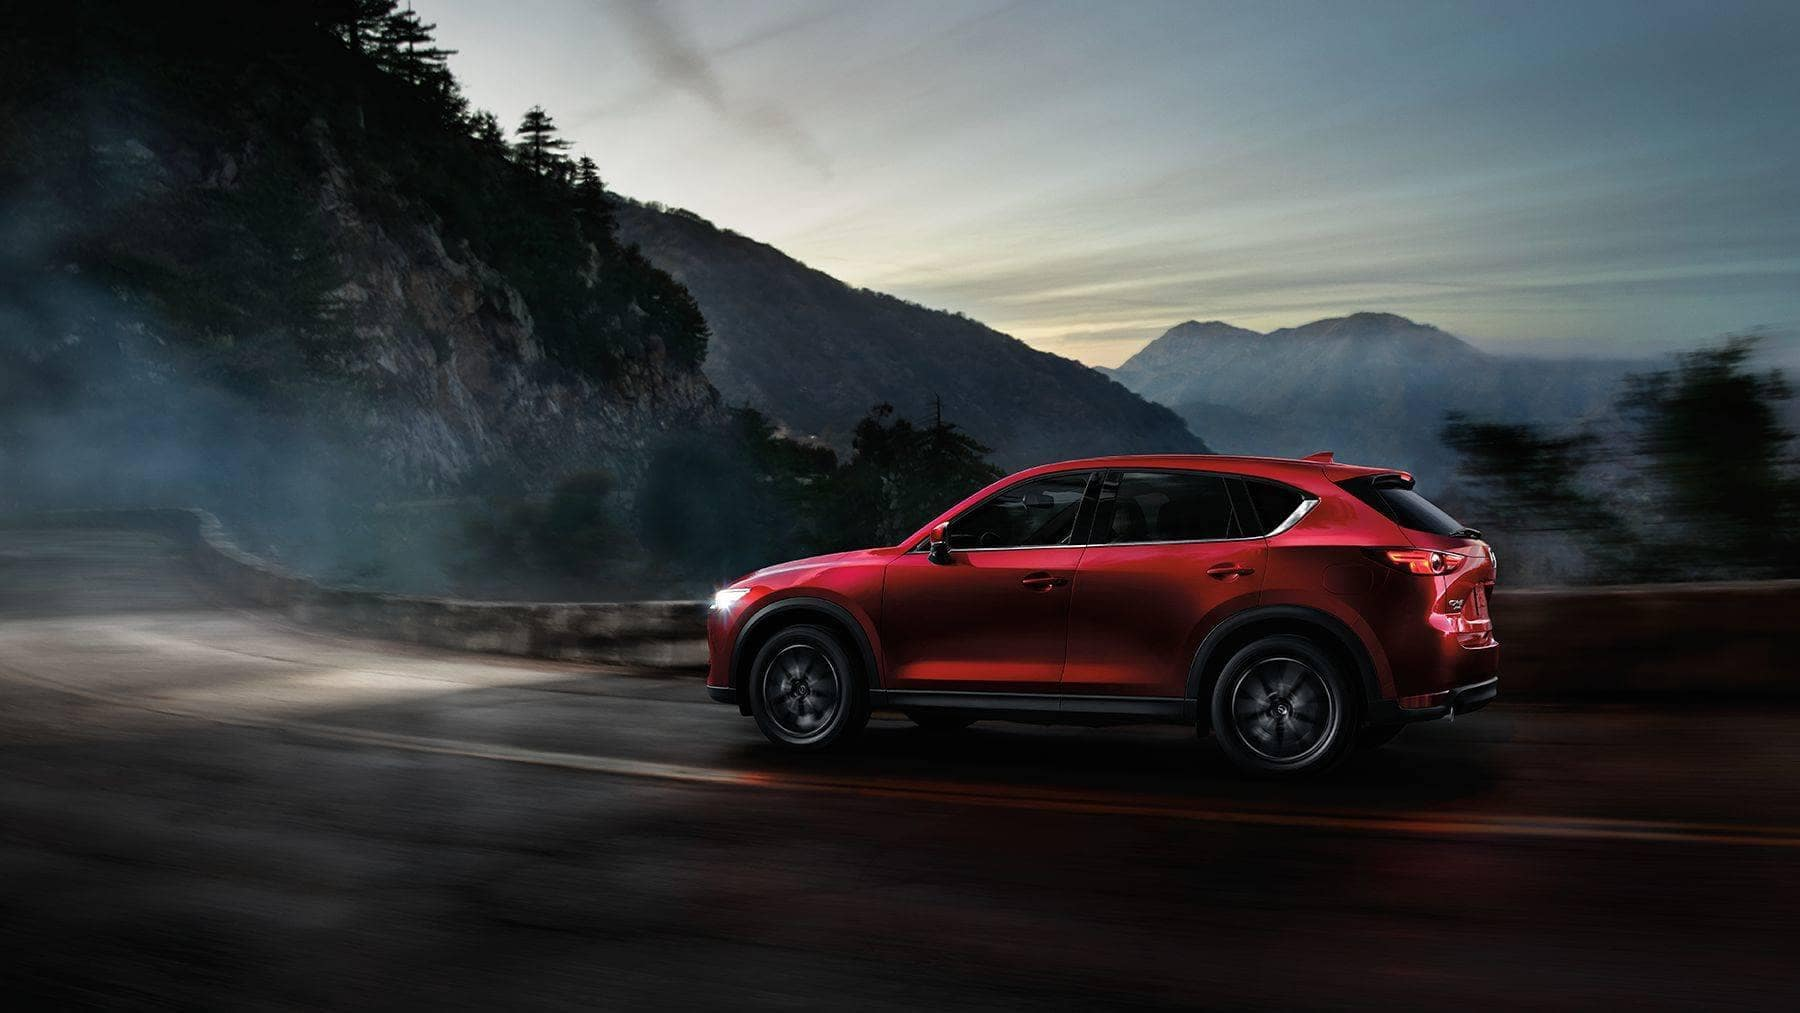 2018 Mazda CX-5 in the mountains